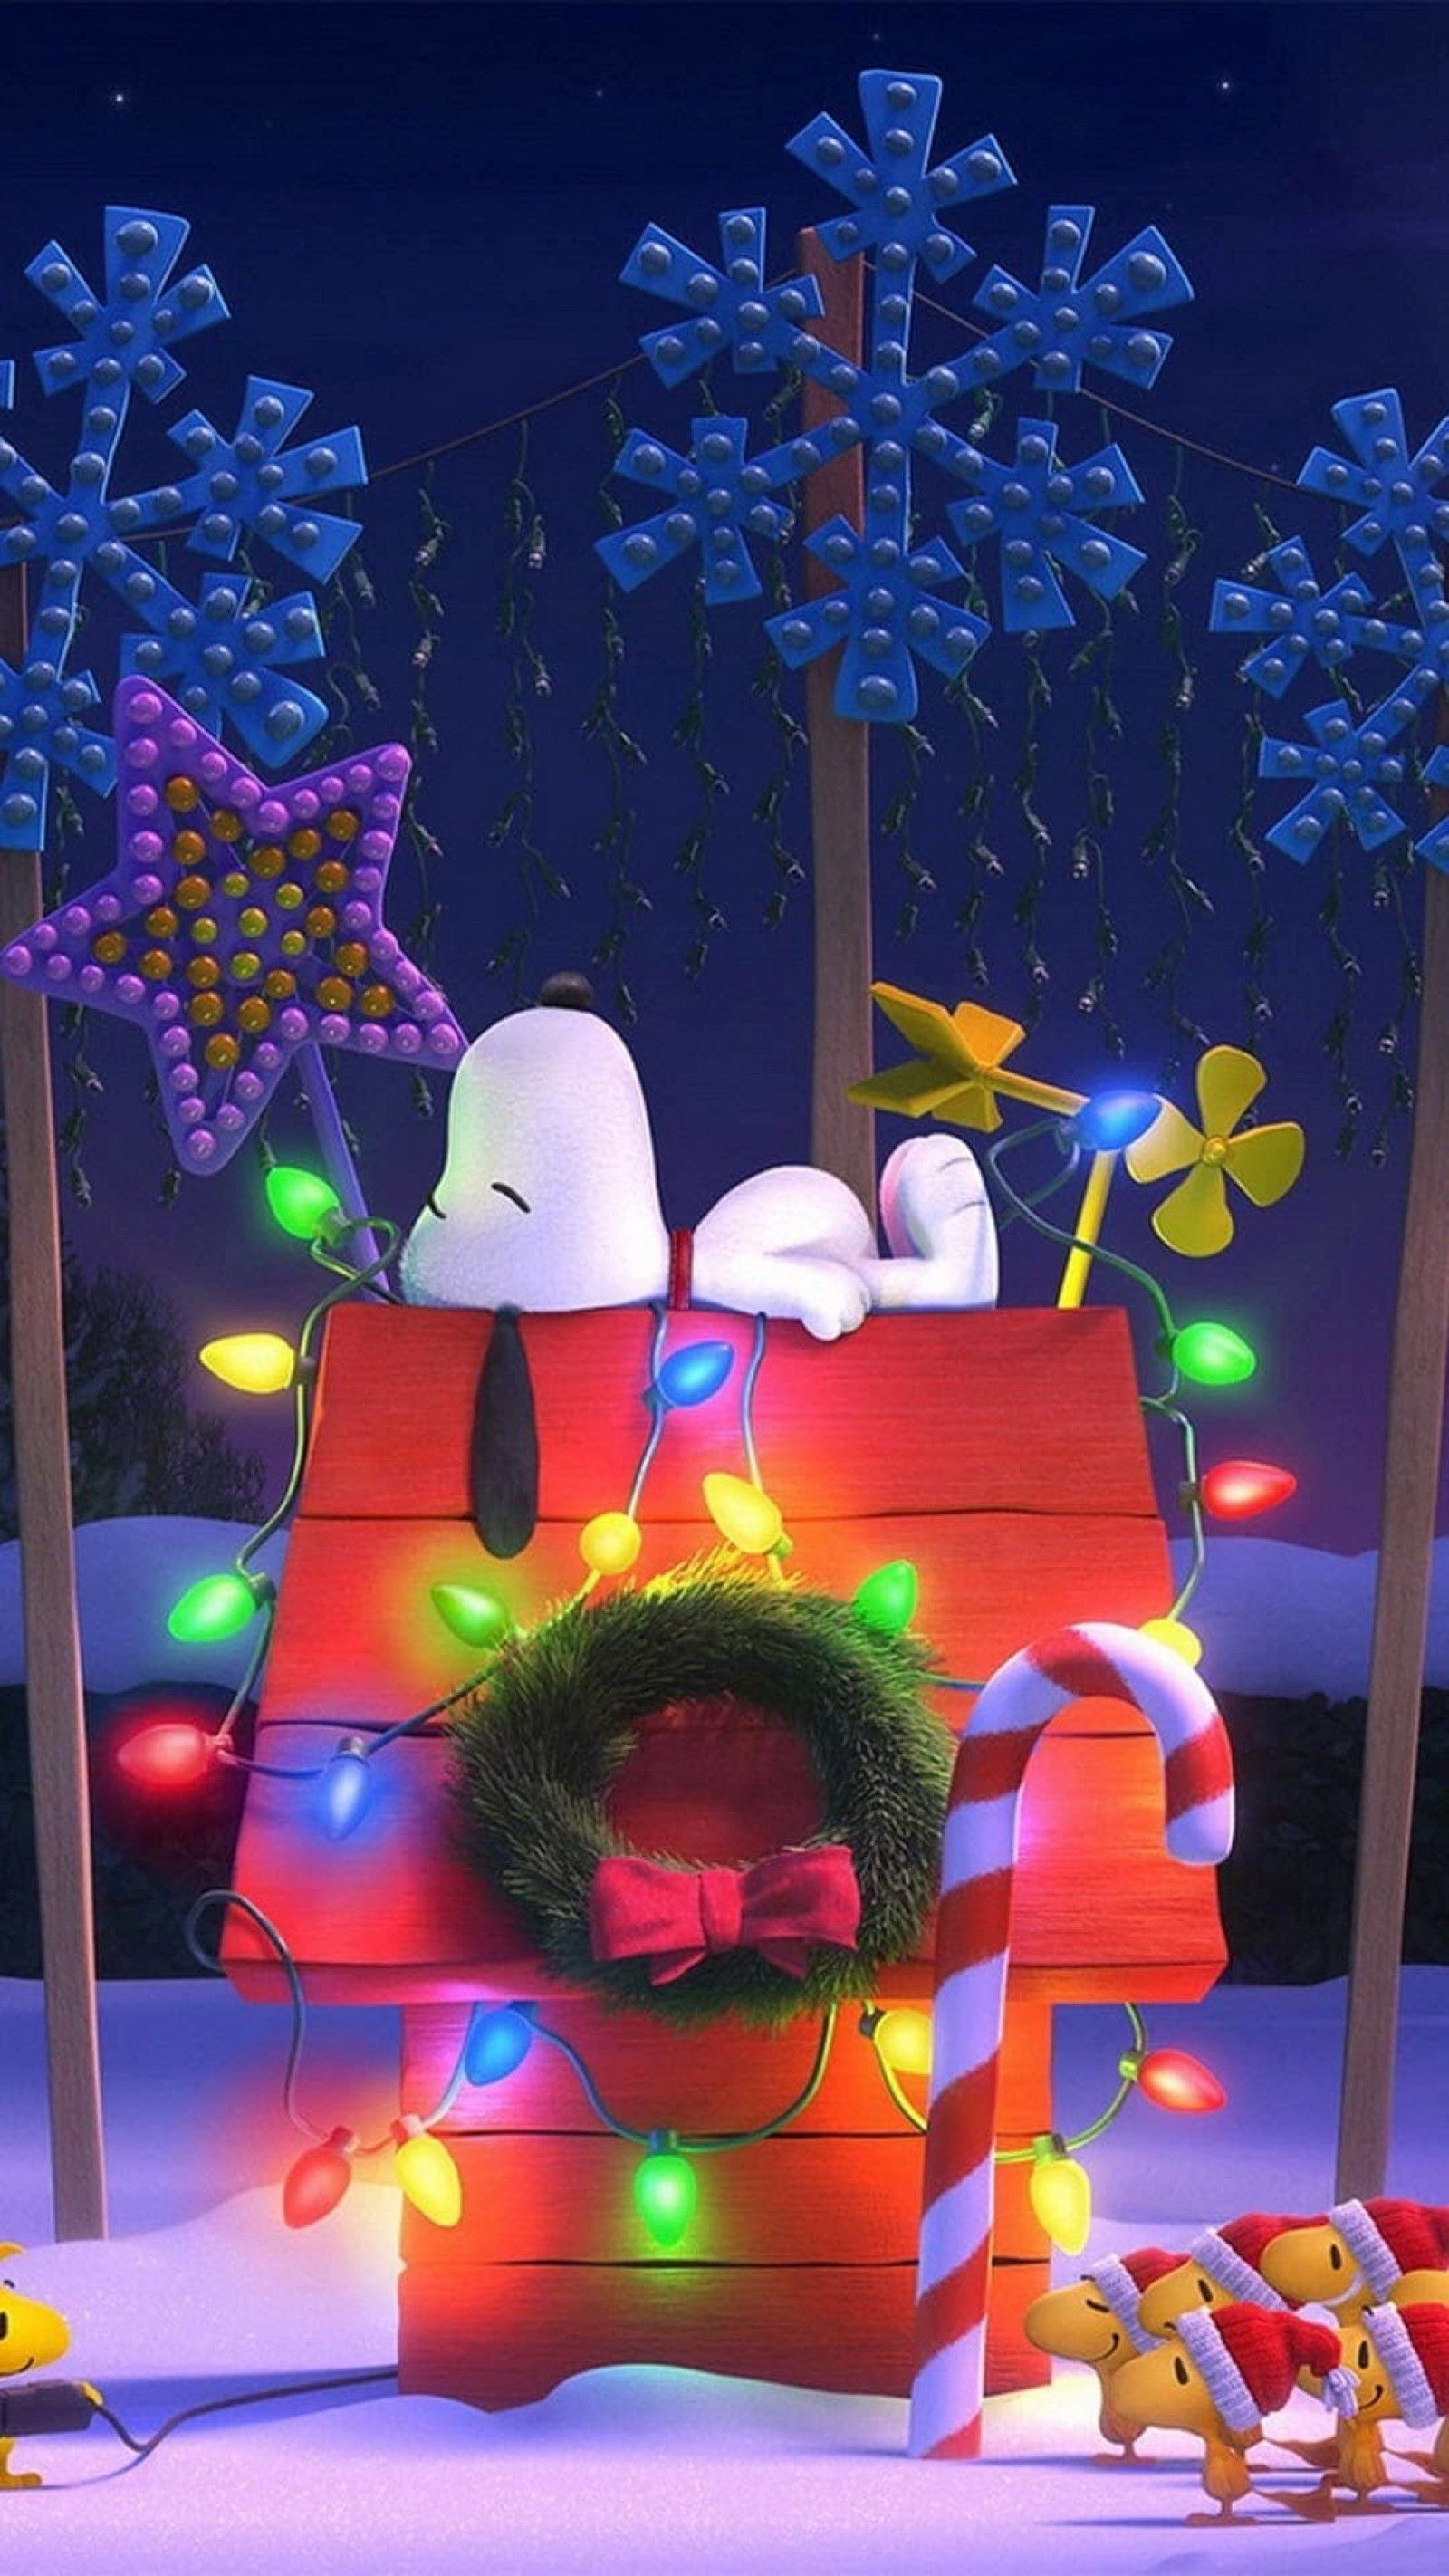 Snoopy Christmas iPhone Wallpapers